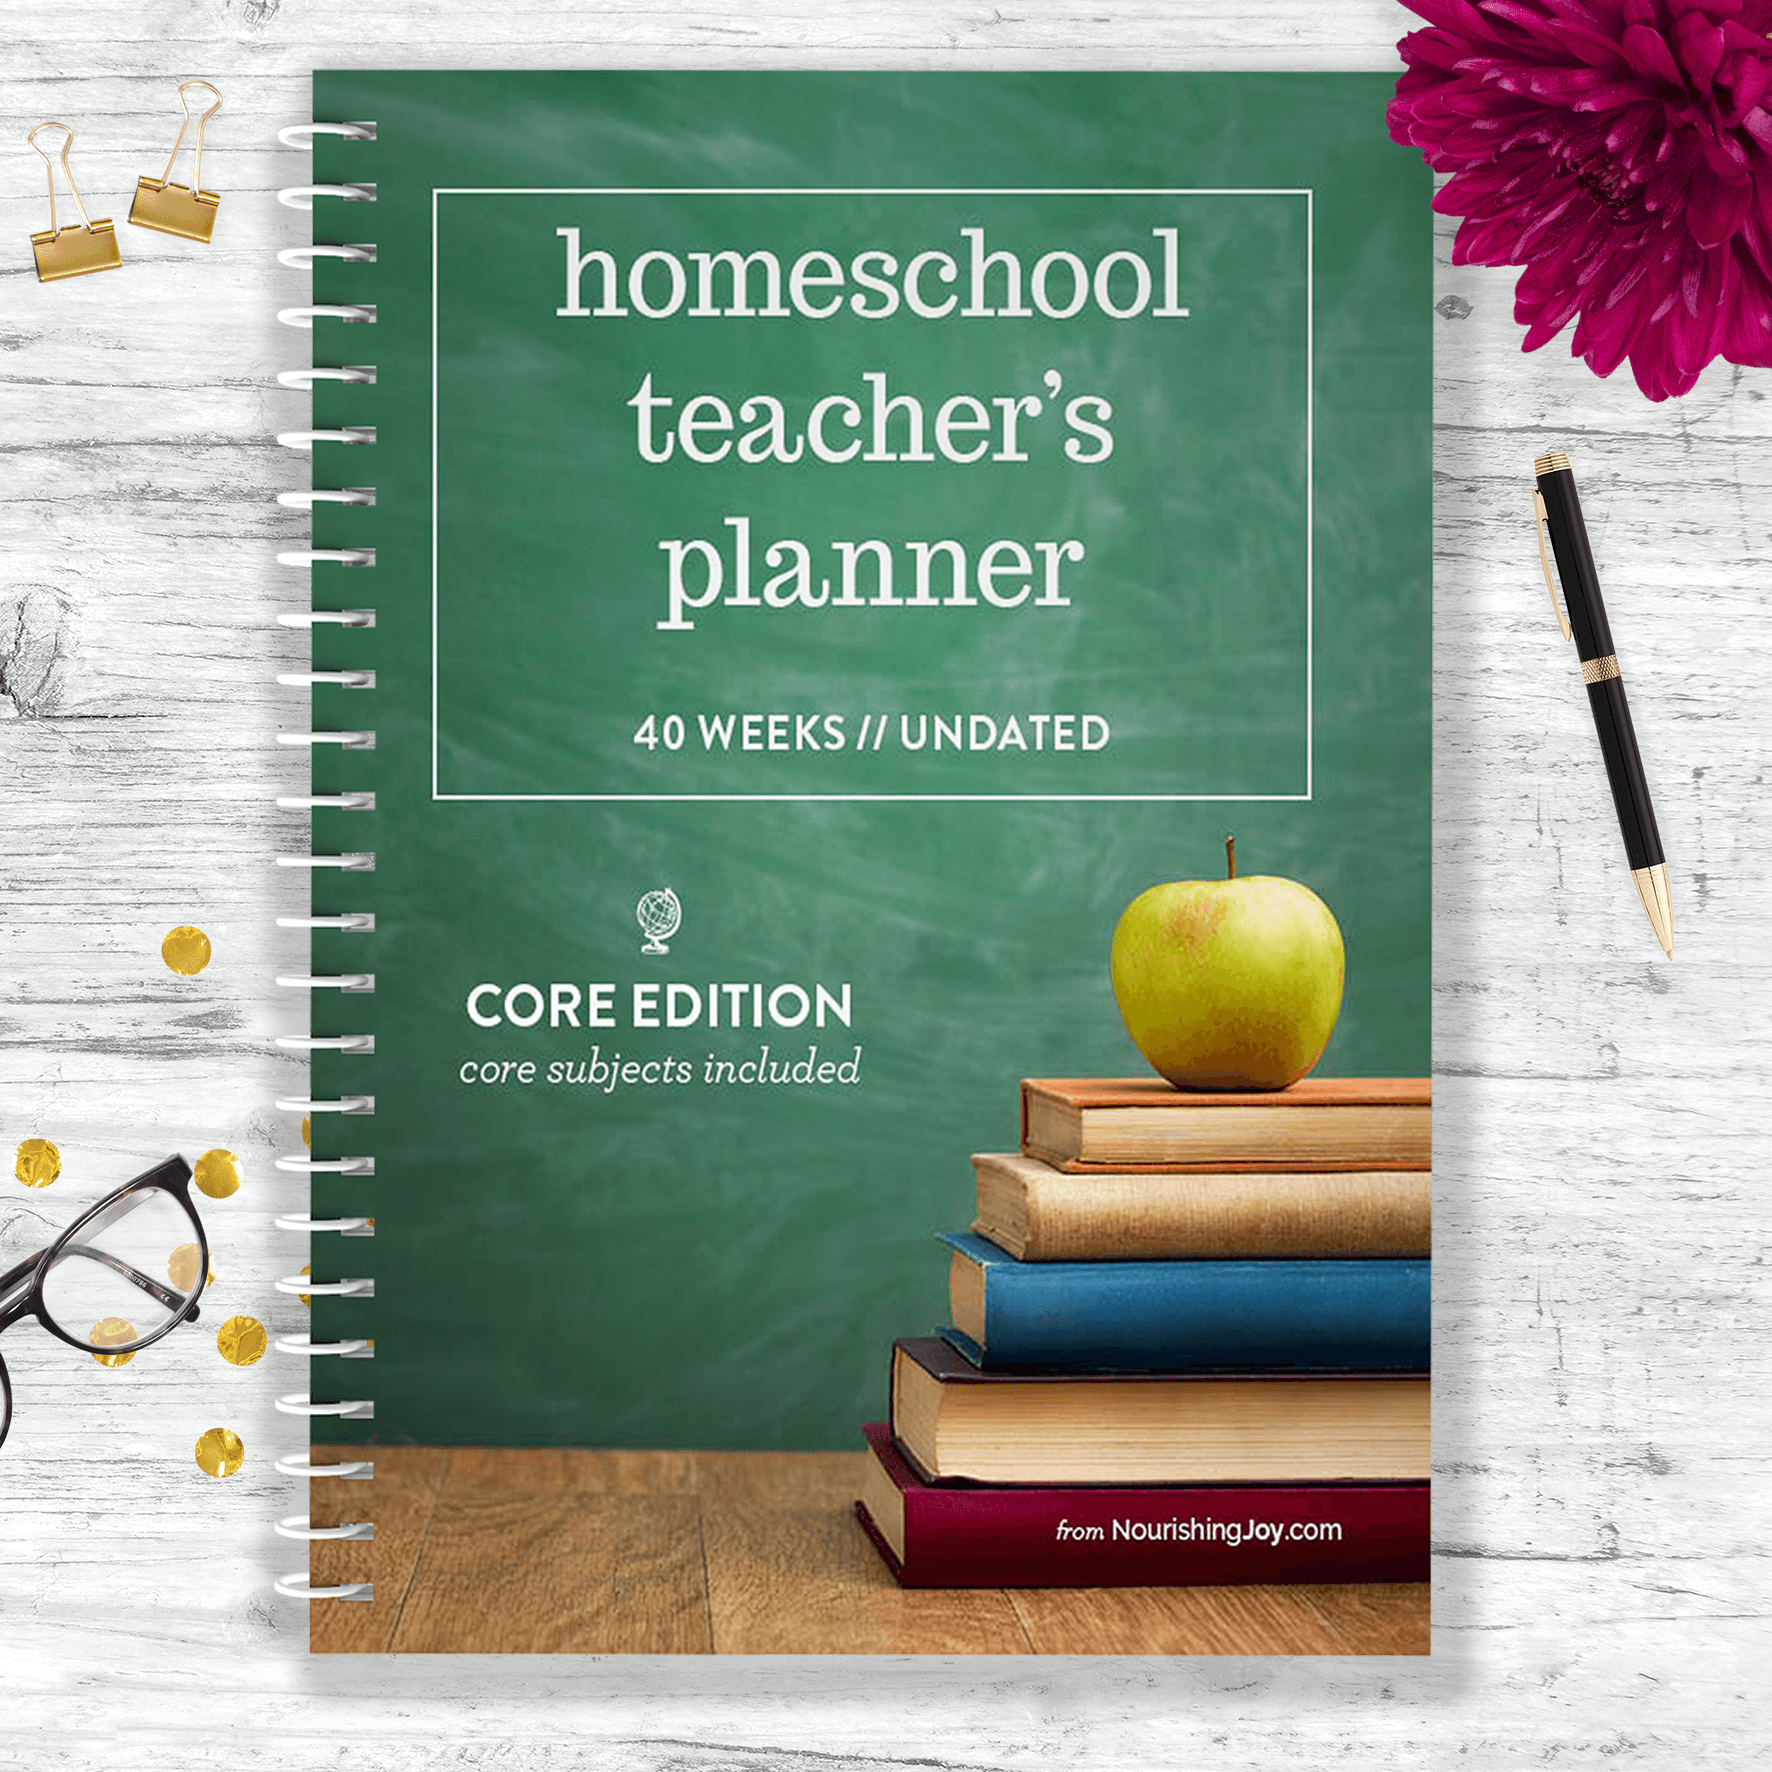 Homeschool teacher lesson planner